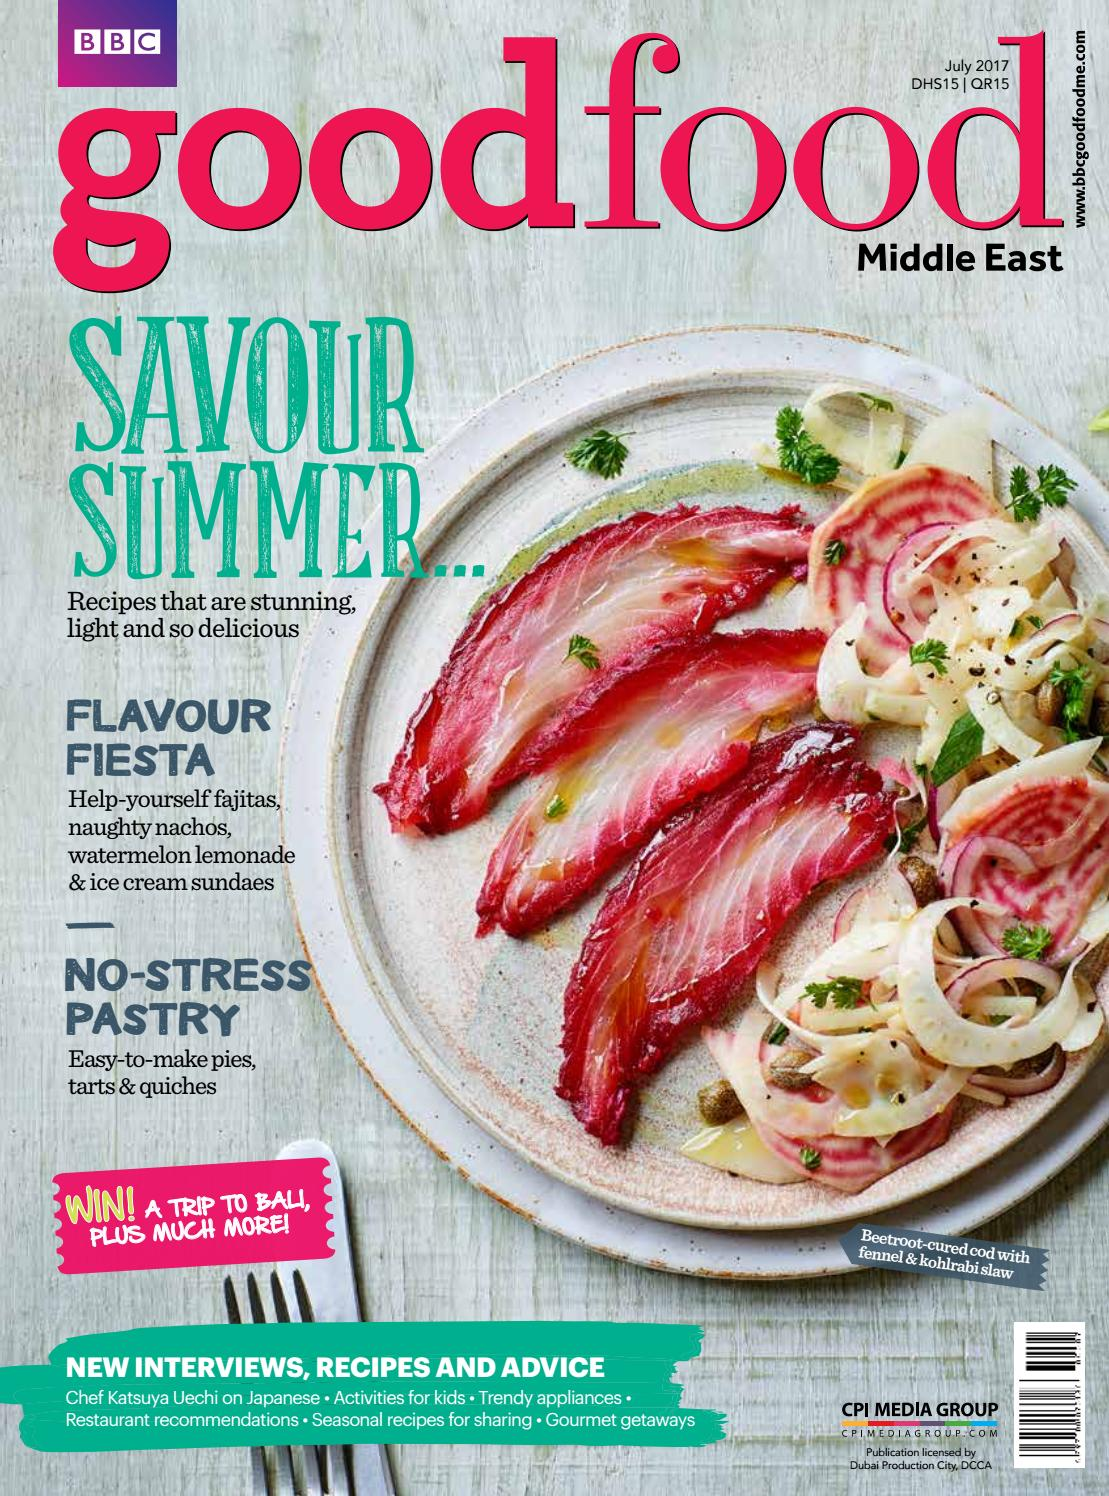 Bbc good food me 2017 march by bbc good food me issuu bbc good food me 2017 july forumfinder Image collections